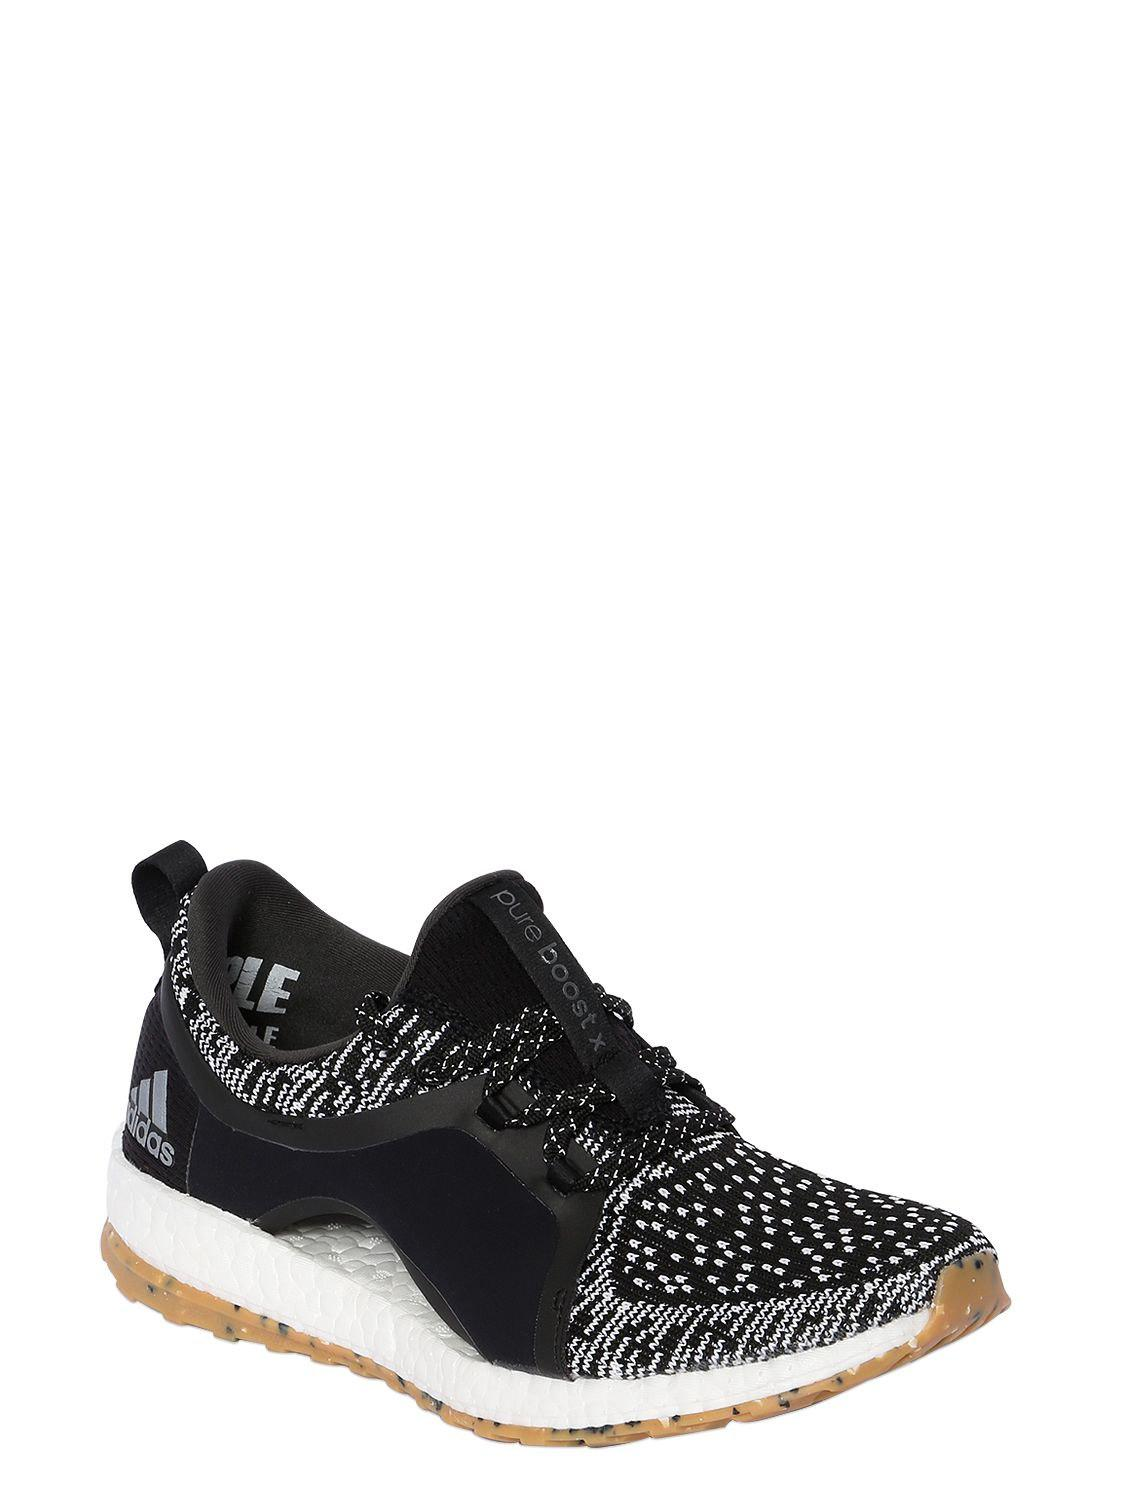 outlet store 2badd 3040a ... where can i buy adidas originals black pure boost x atr sneakers for men  lyst.